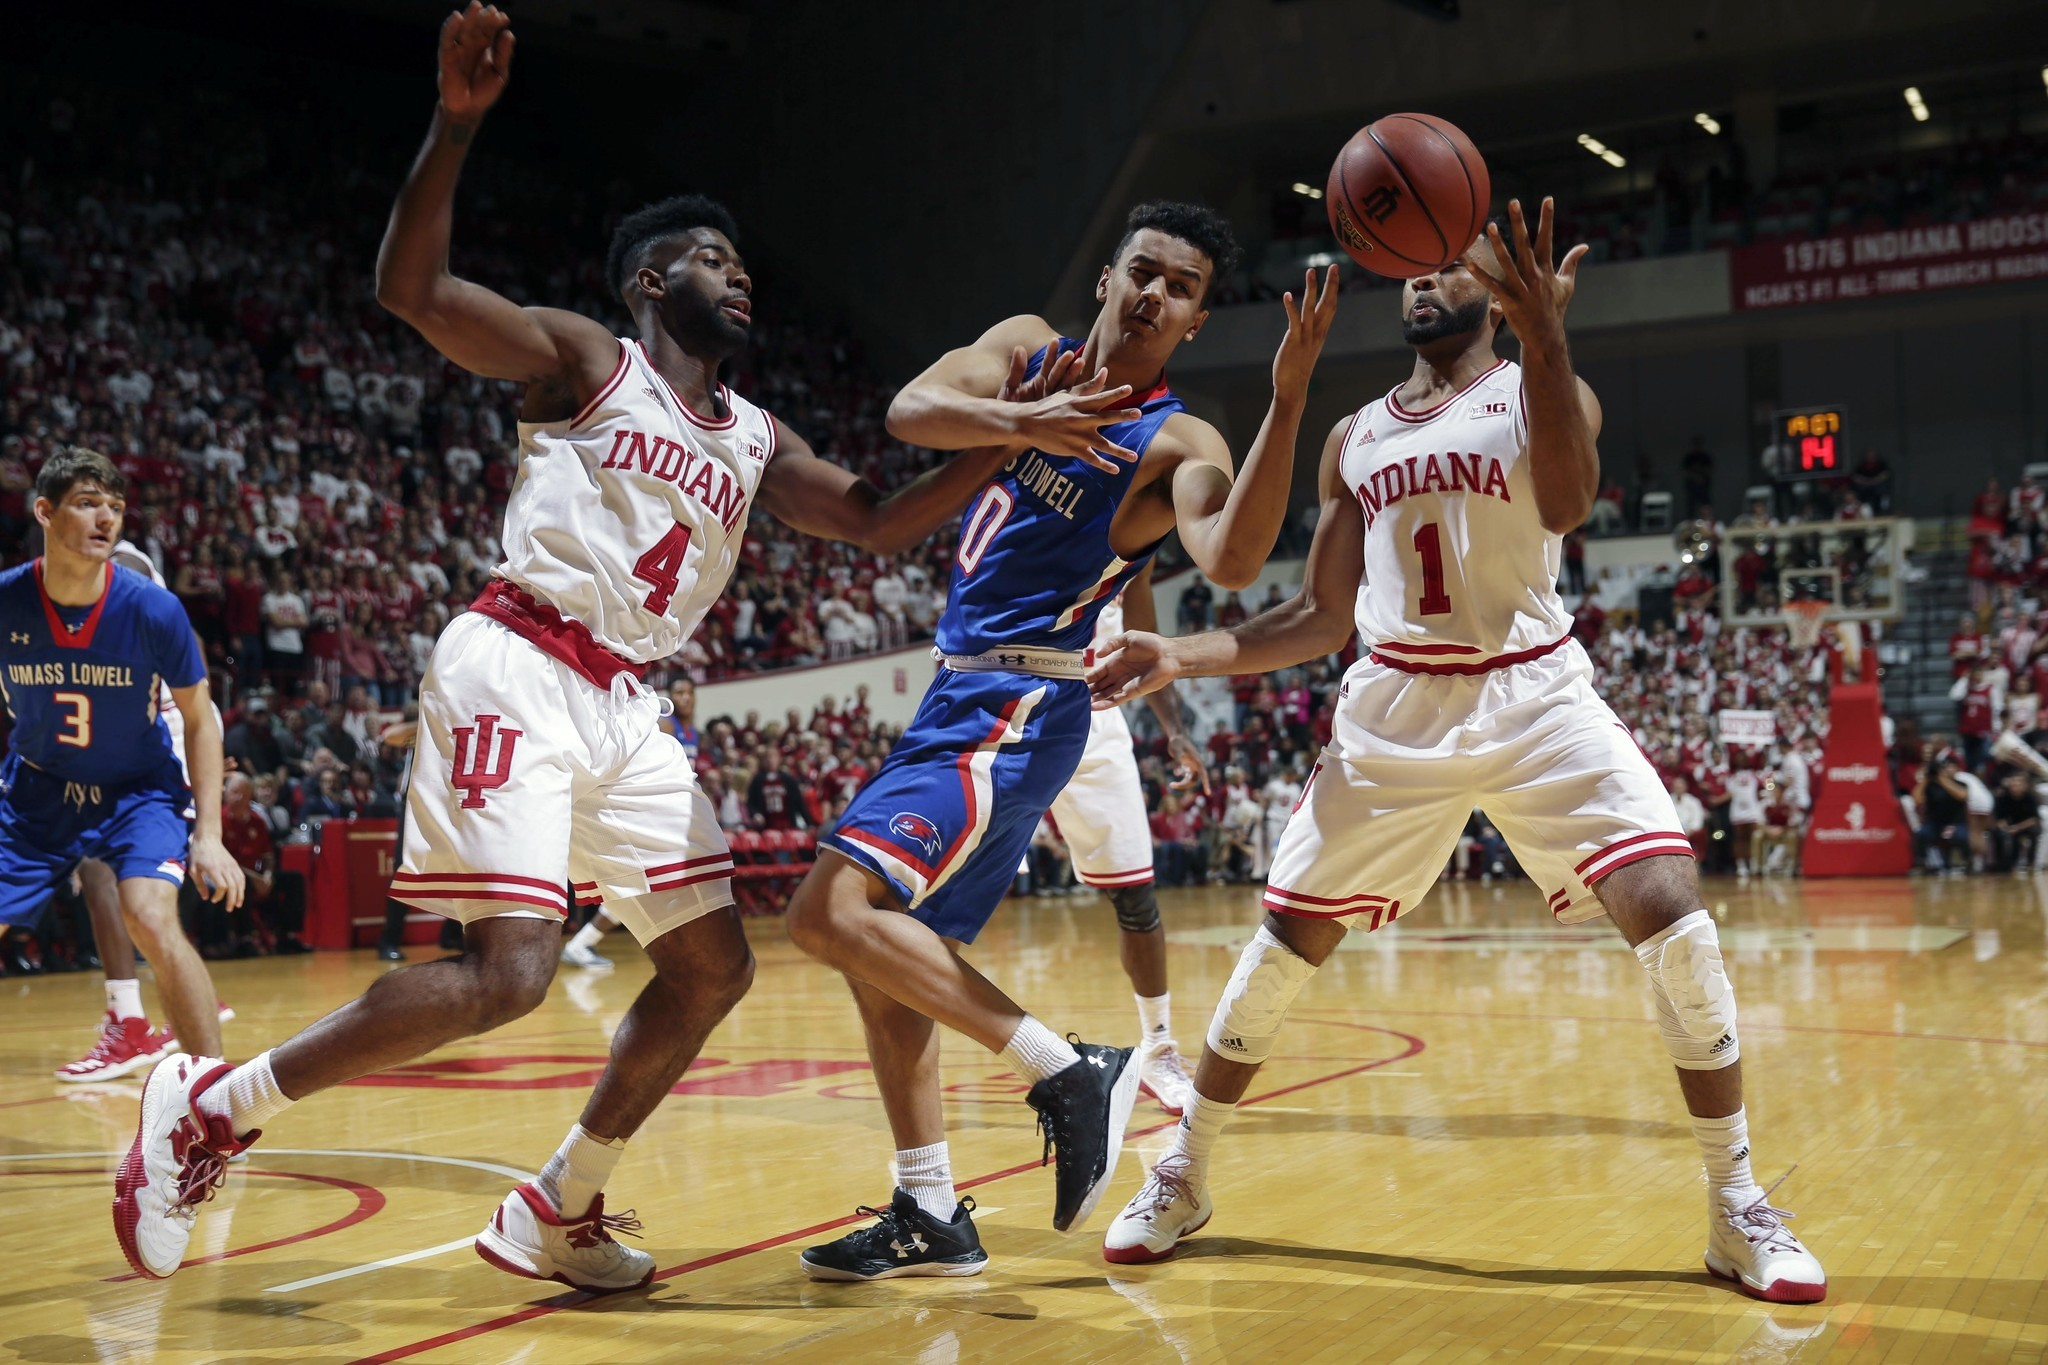 6 indiana blows out umass lowell notre dame routs seattle chicago tribune